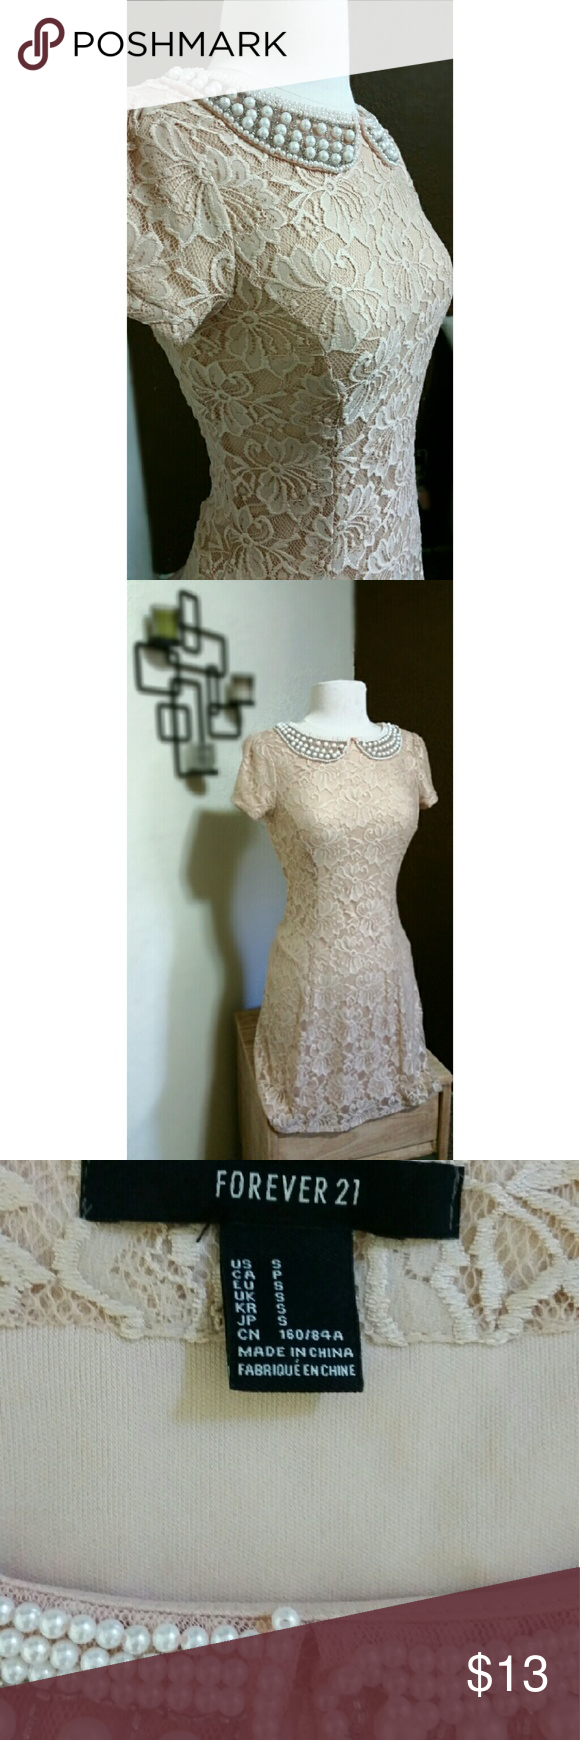 {New Listing} Lace Floral Embellished Collar Dress Feminine details & romantic silhouette. Its beautiful floral cream colored lace fabric complements the faux pearl embellished collar. Its invisible side zipper ensures a secure and seamless fit. In very good condition and is a size small. Forever 21 Dresses